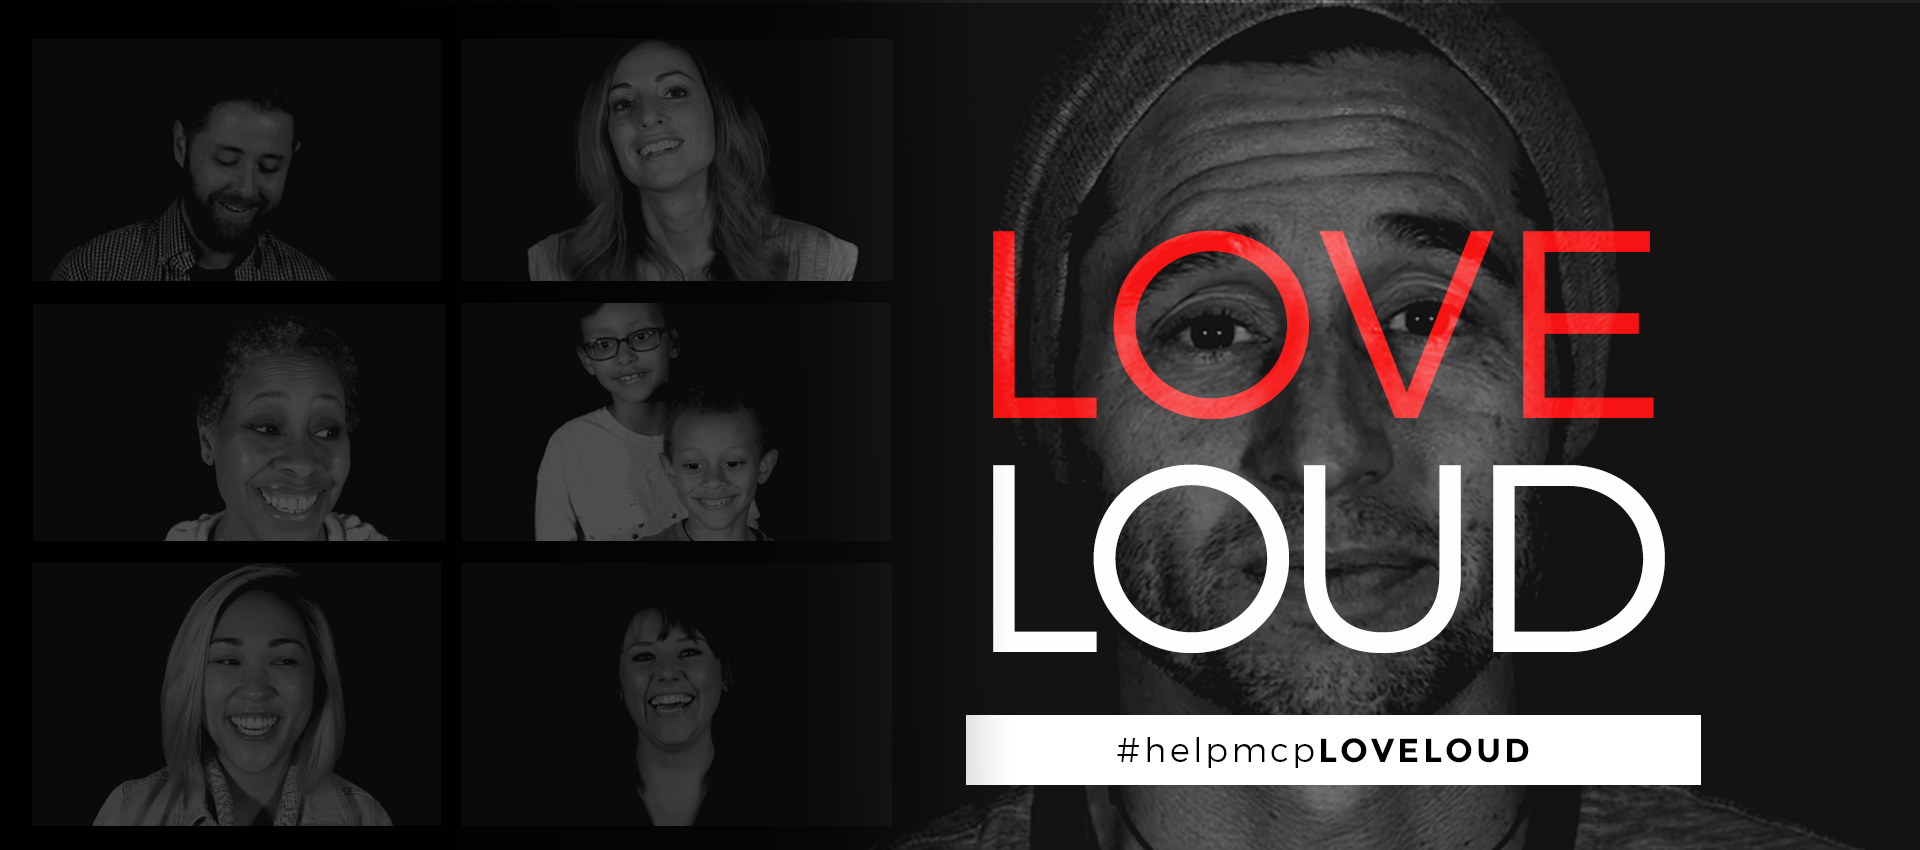 Love LOUD - #helpmcpLOVELOUD